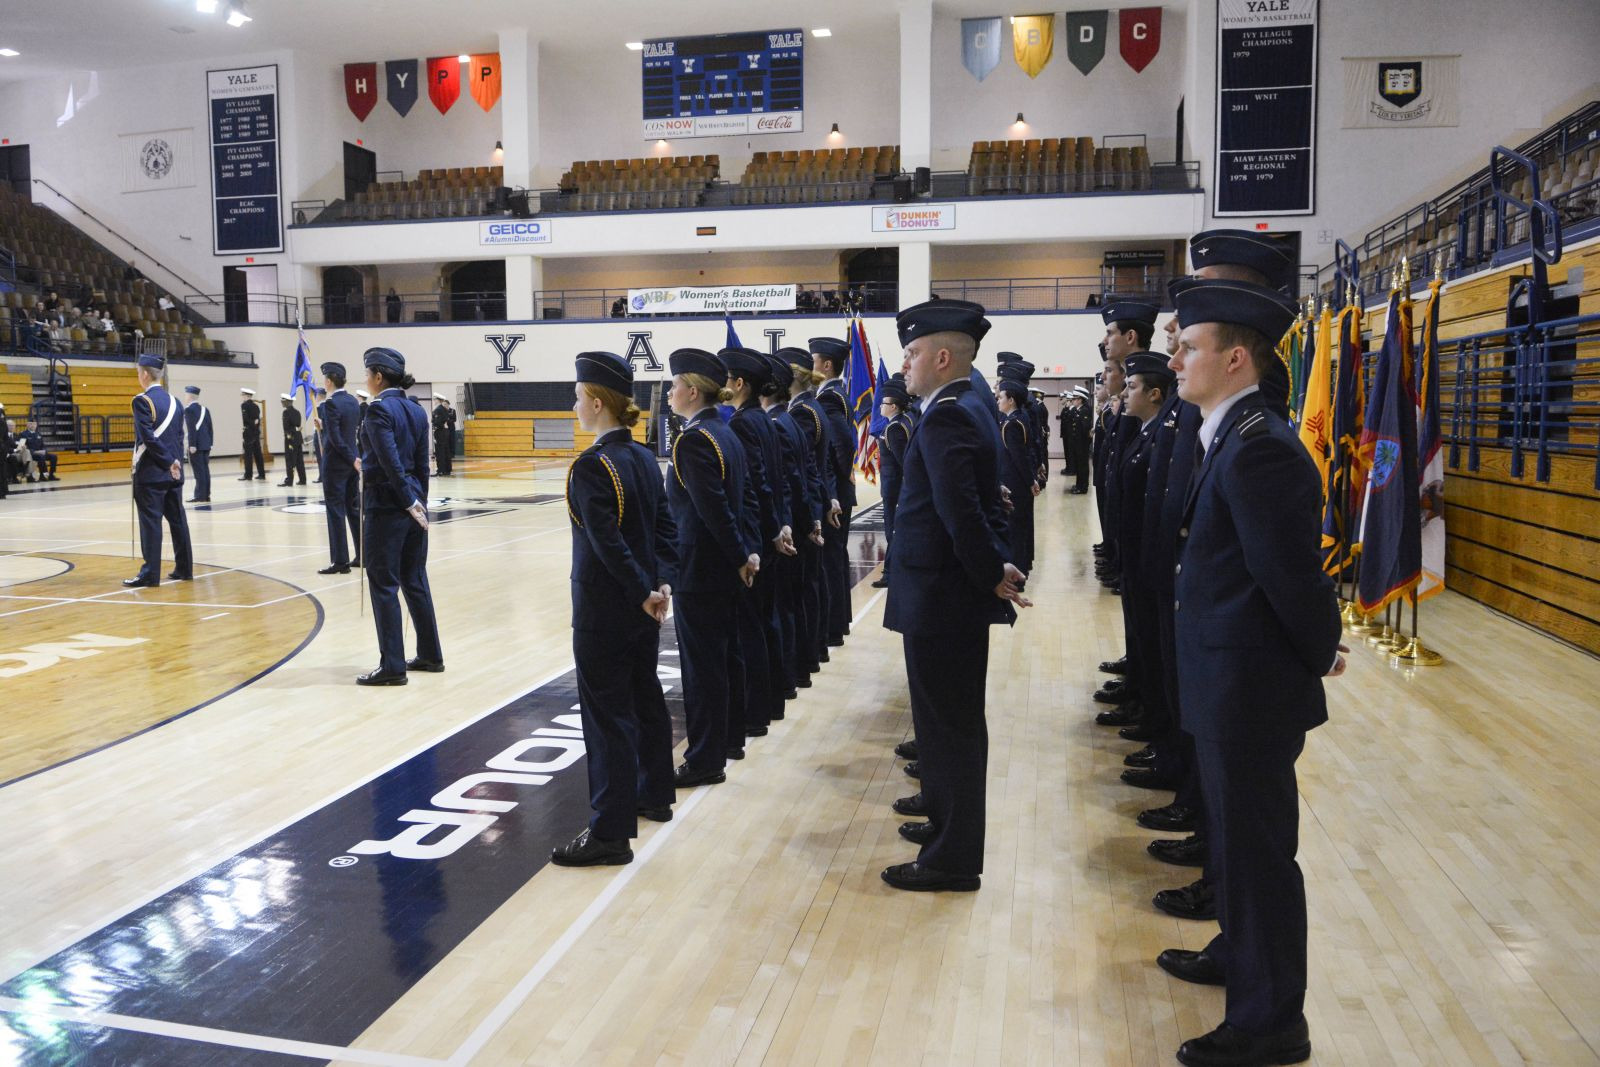 ROTC students stand at attention in rows